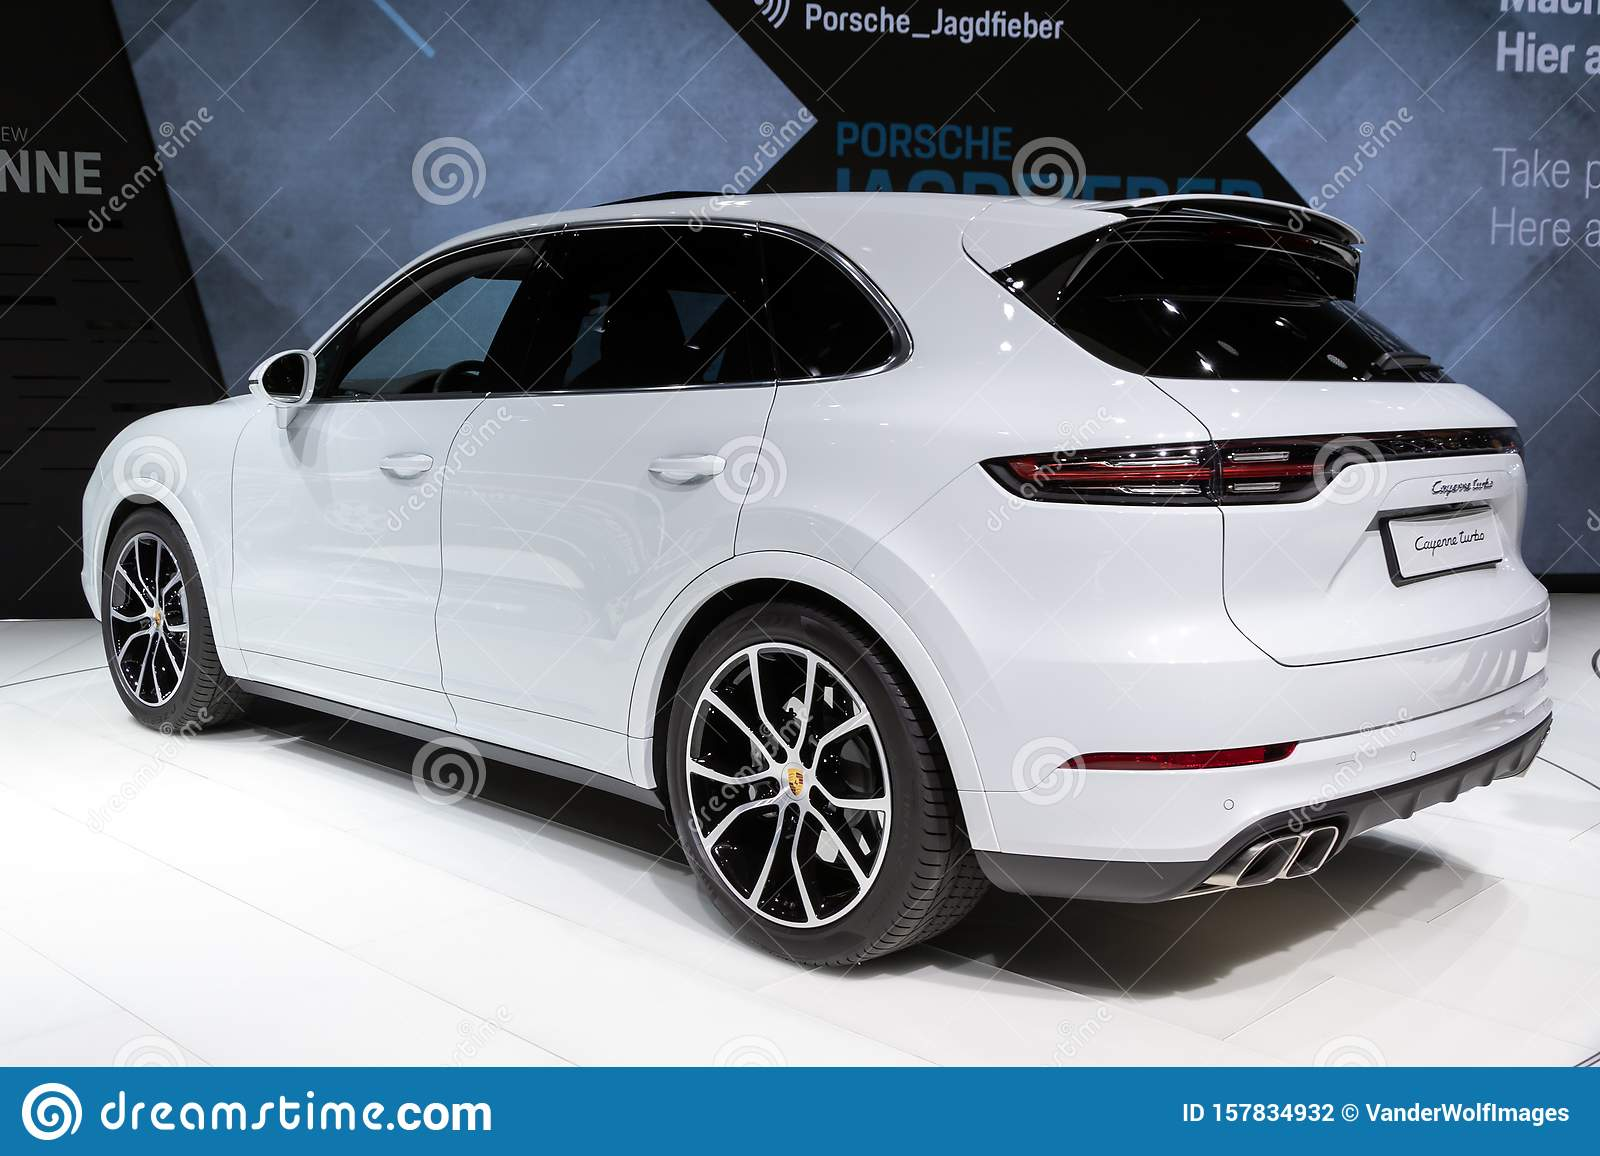 Porsche Cayenne Suv Car Editorial Photography Image Of Back 157834932